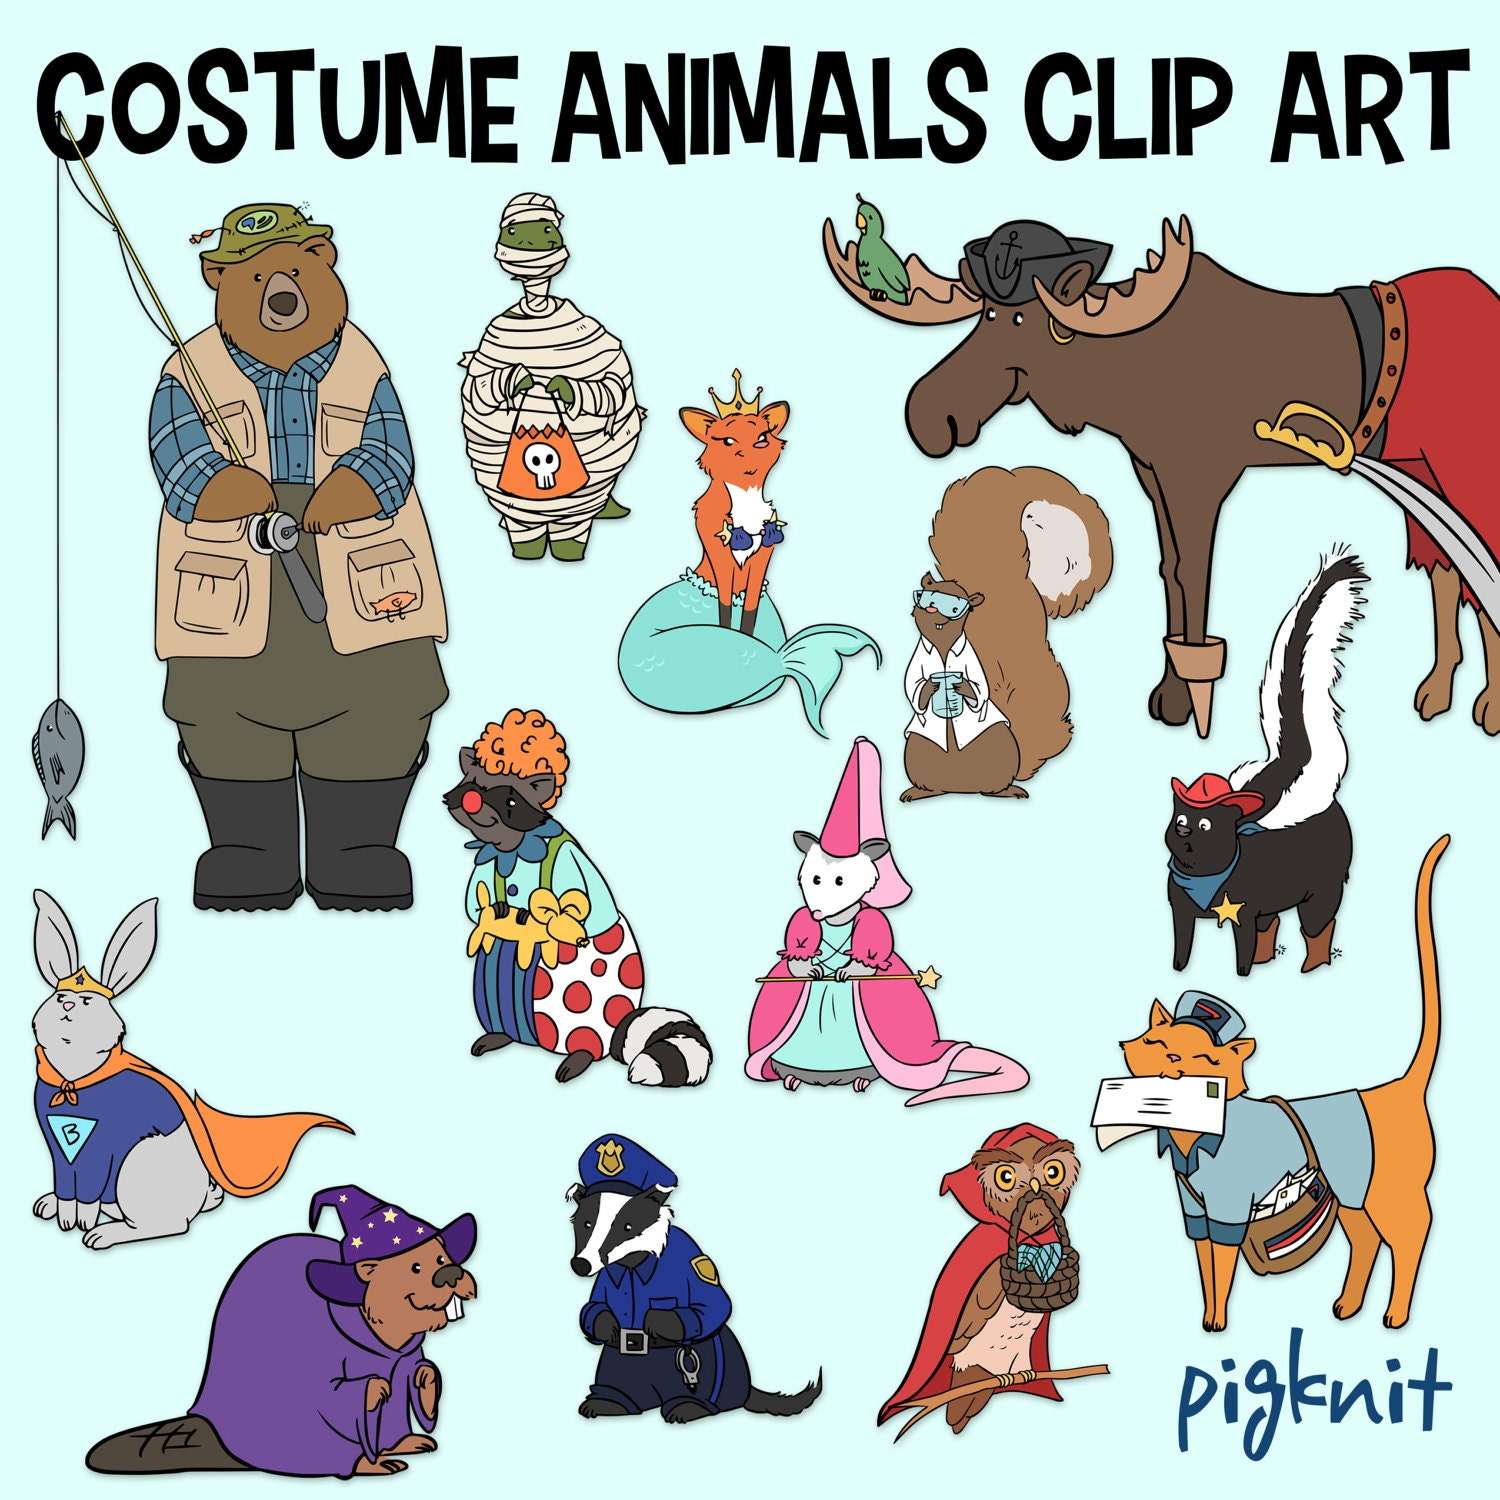 trick or treat clipart halloween costume clipart cute halloween rh etsystudio com halloween costume contest clipart halloween costume contest clipart